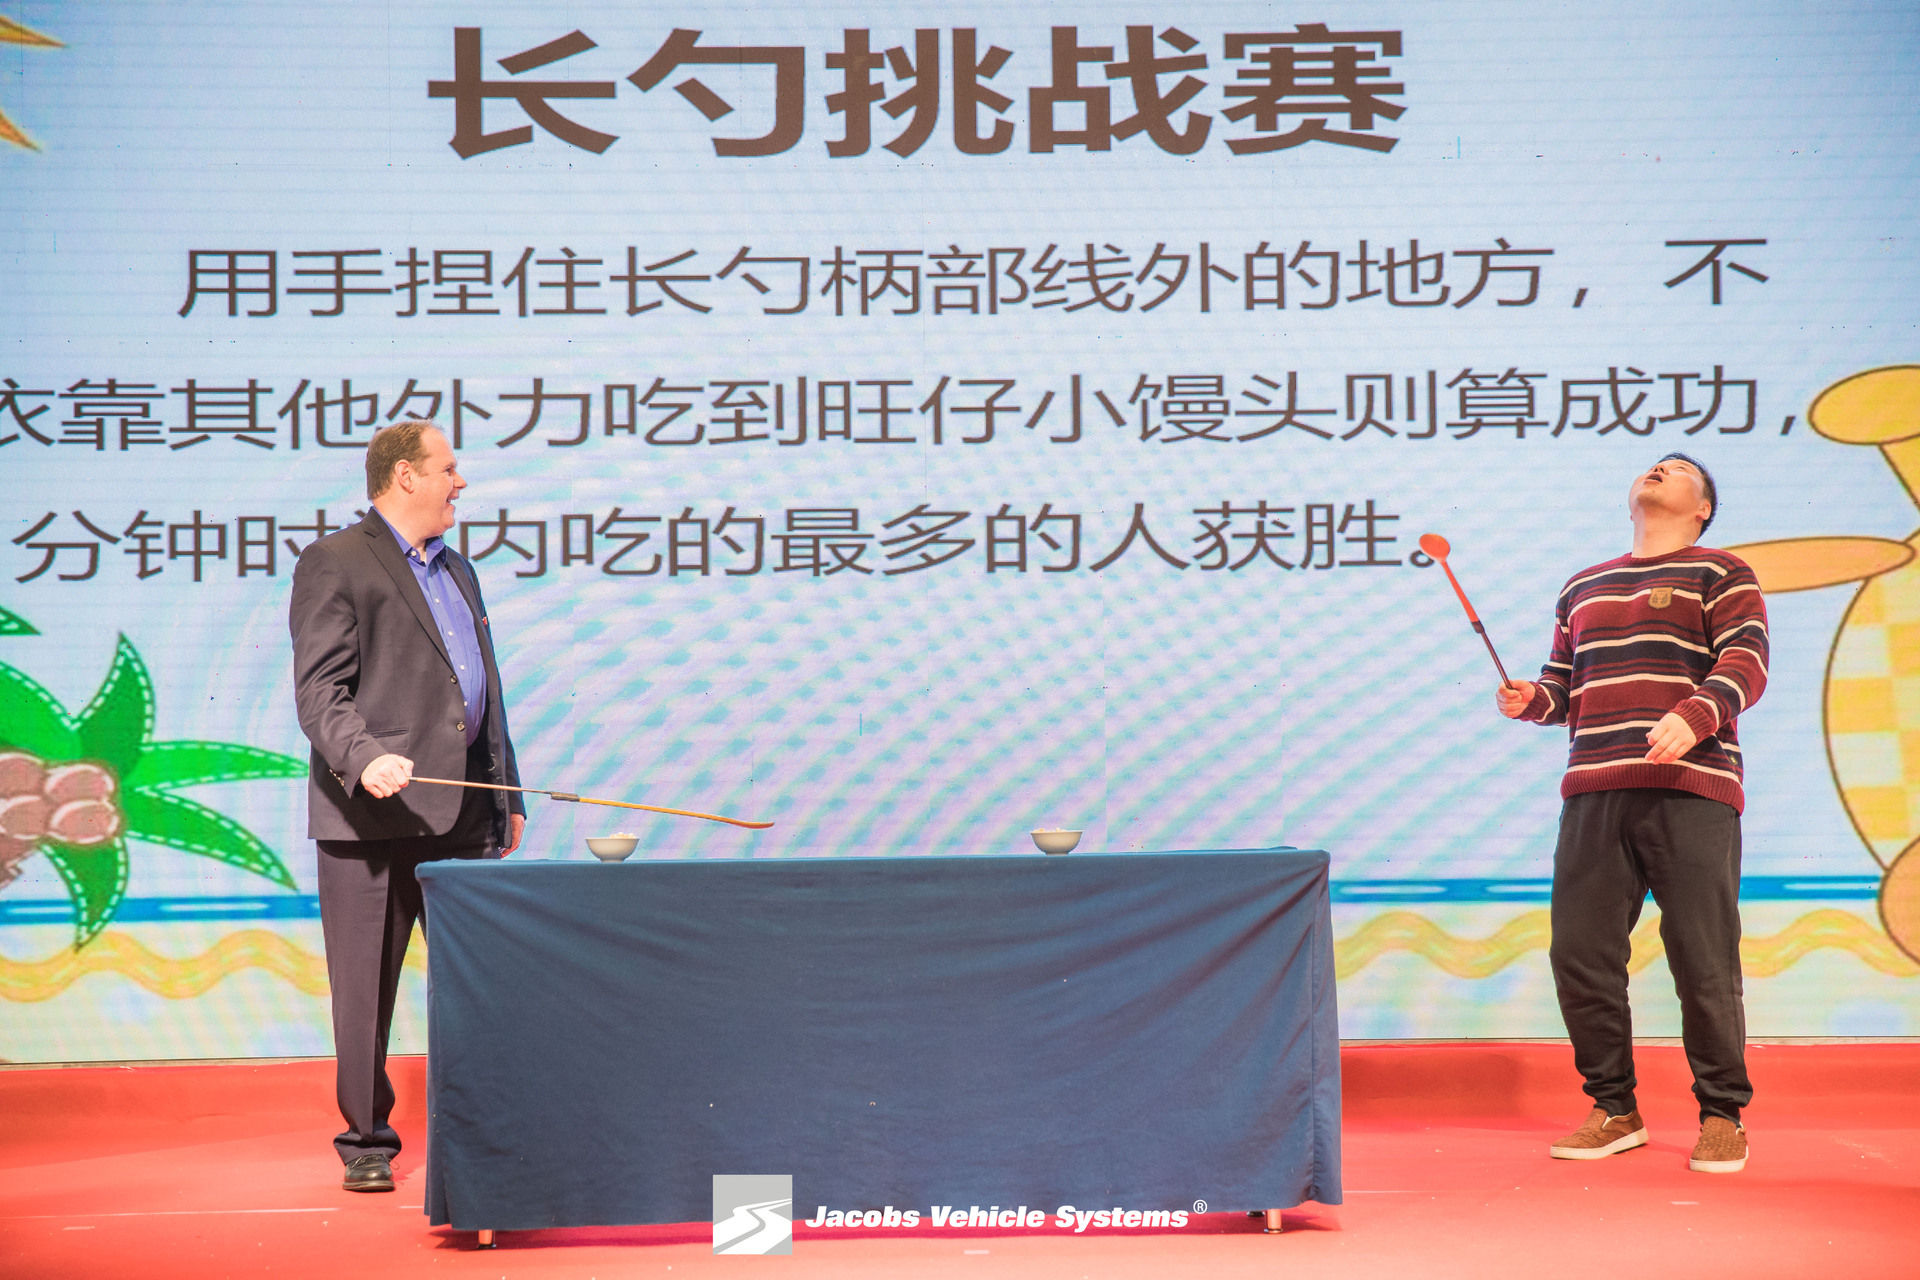 Jacobs President and Suzhou General Manager perform on stage.